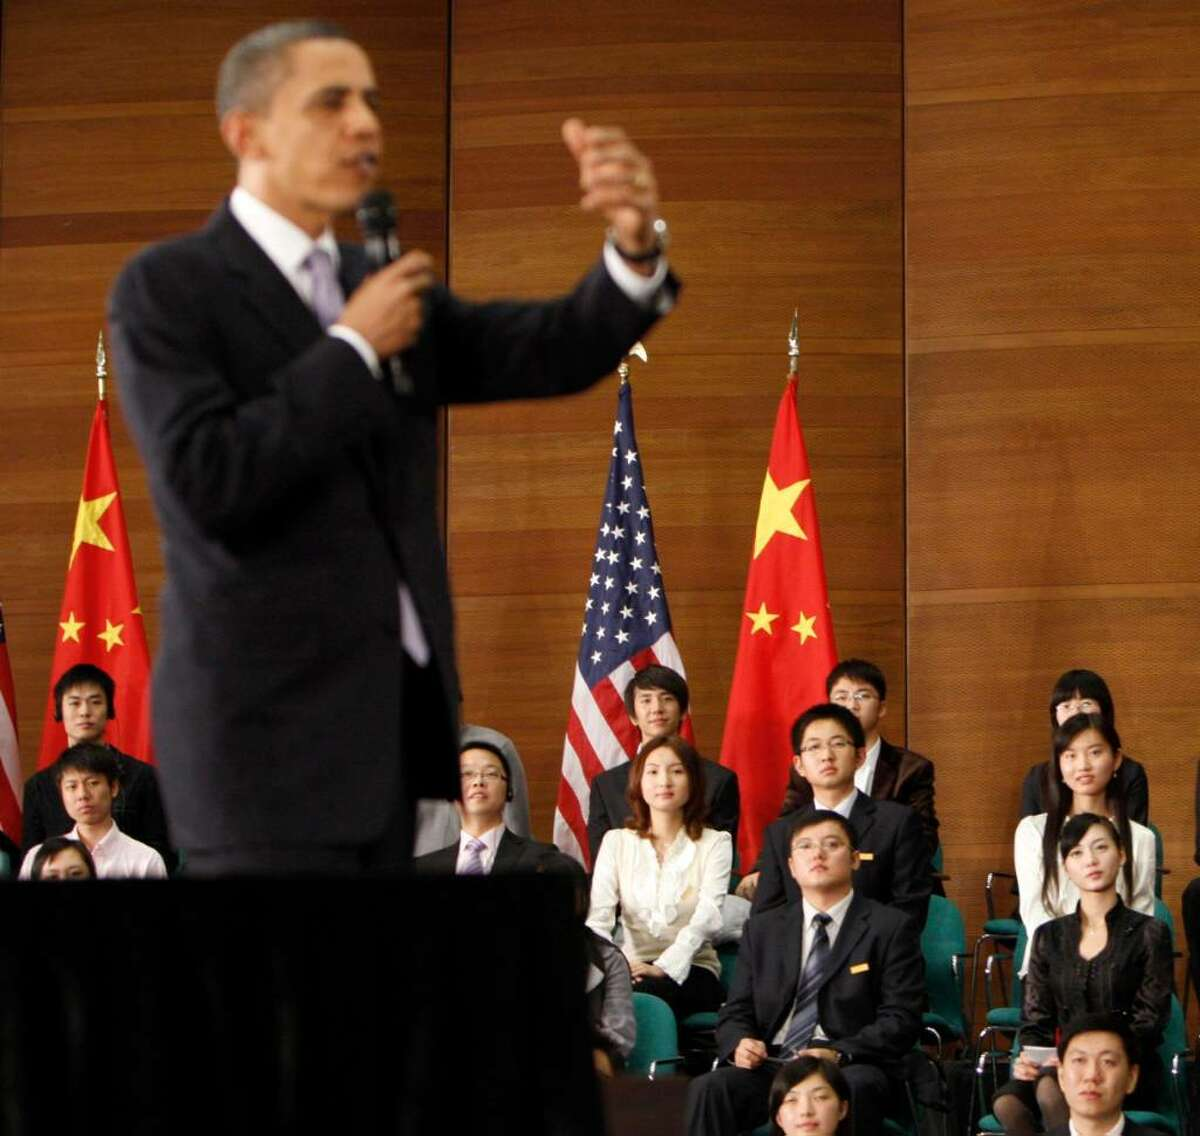 File - In this Nov. 16, 2009 file photo, Wang Zifei, is seen at far right in the third row in the background while listening to President Barack Obama, left, answer questions during his town hall meeting at Shanghai Science and Technology Museum in Shanghai, China. Wang has become China's version of the